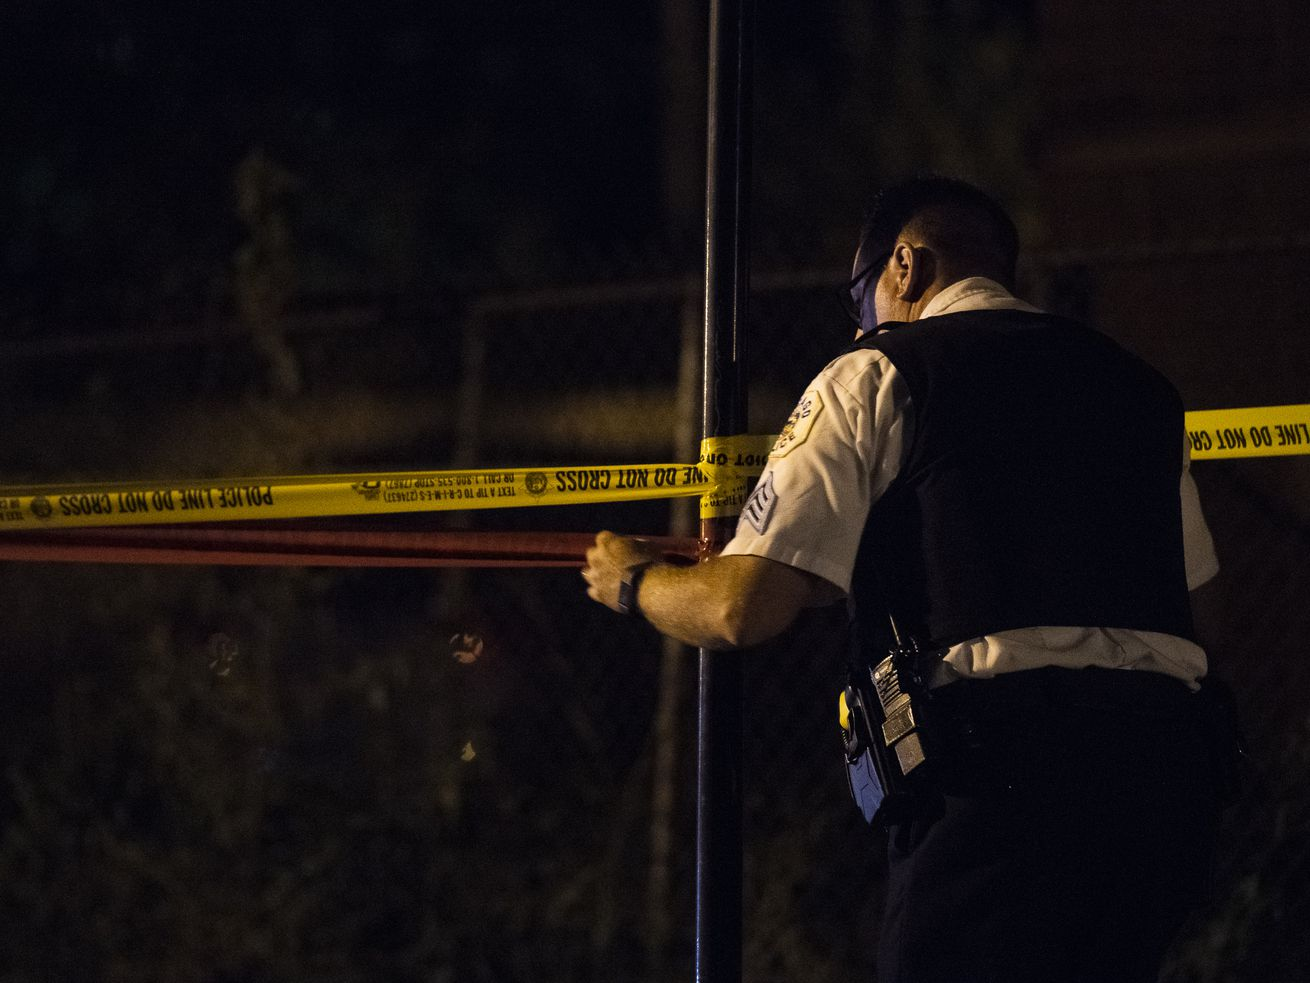 Shootings across Chicago Nov. 14, 2019 wounded eight people.